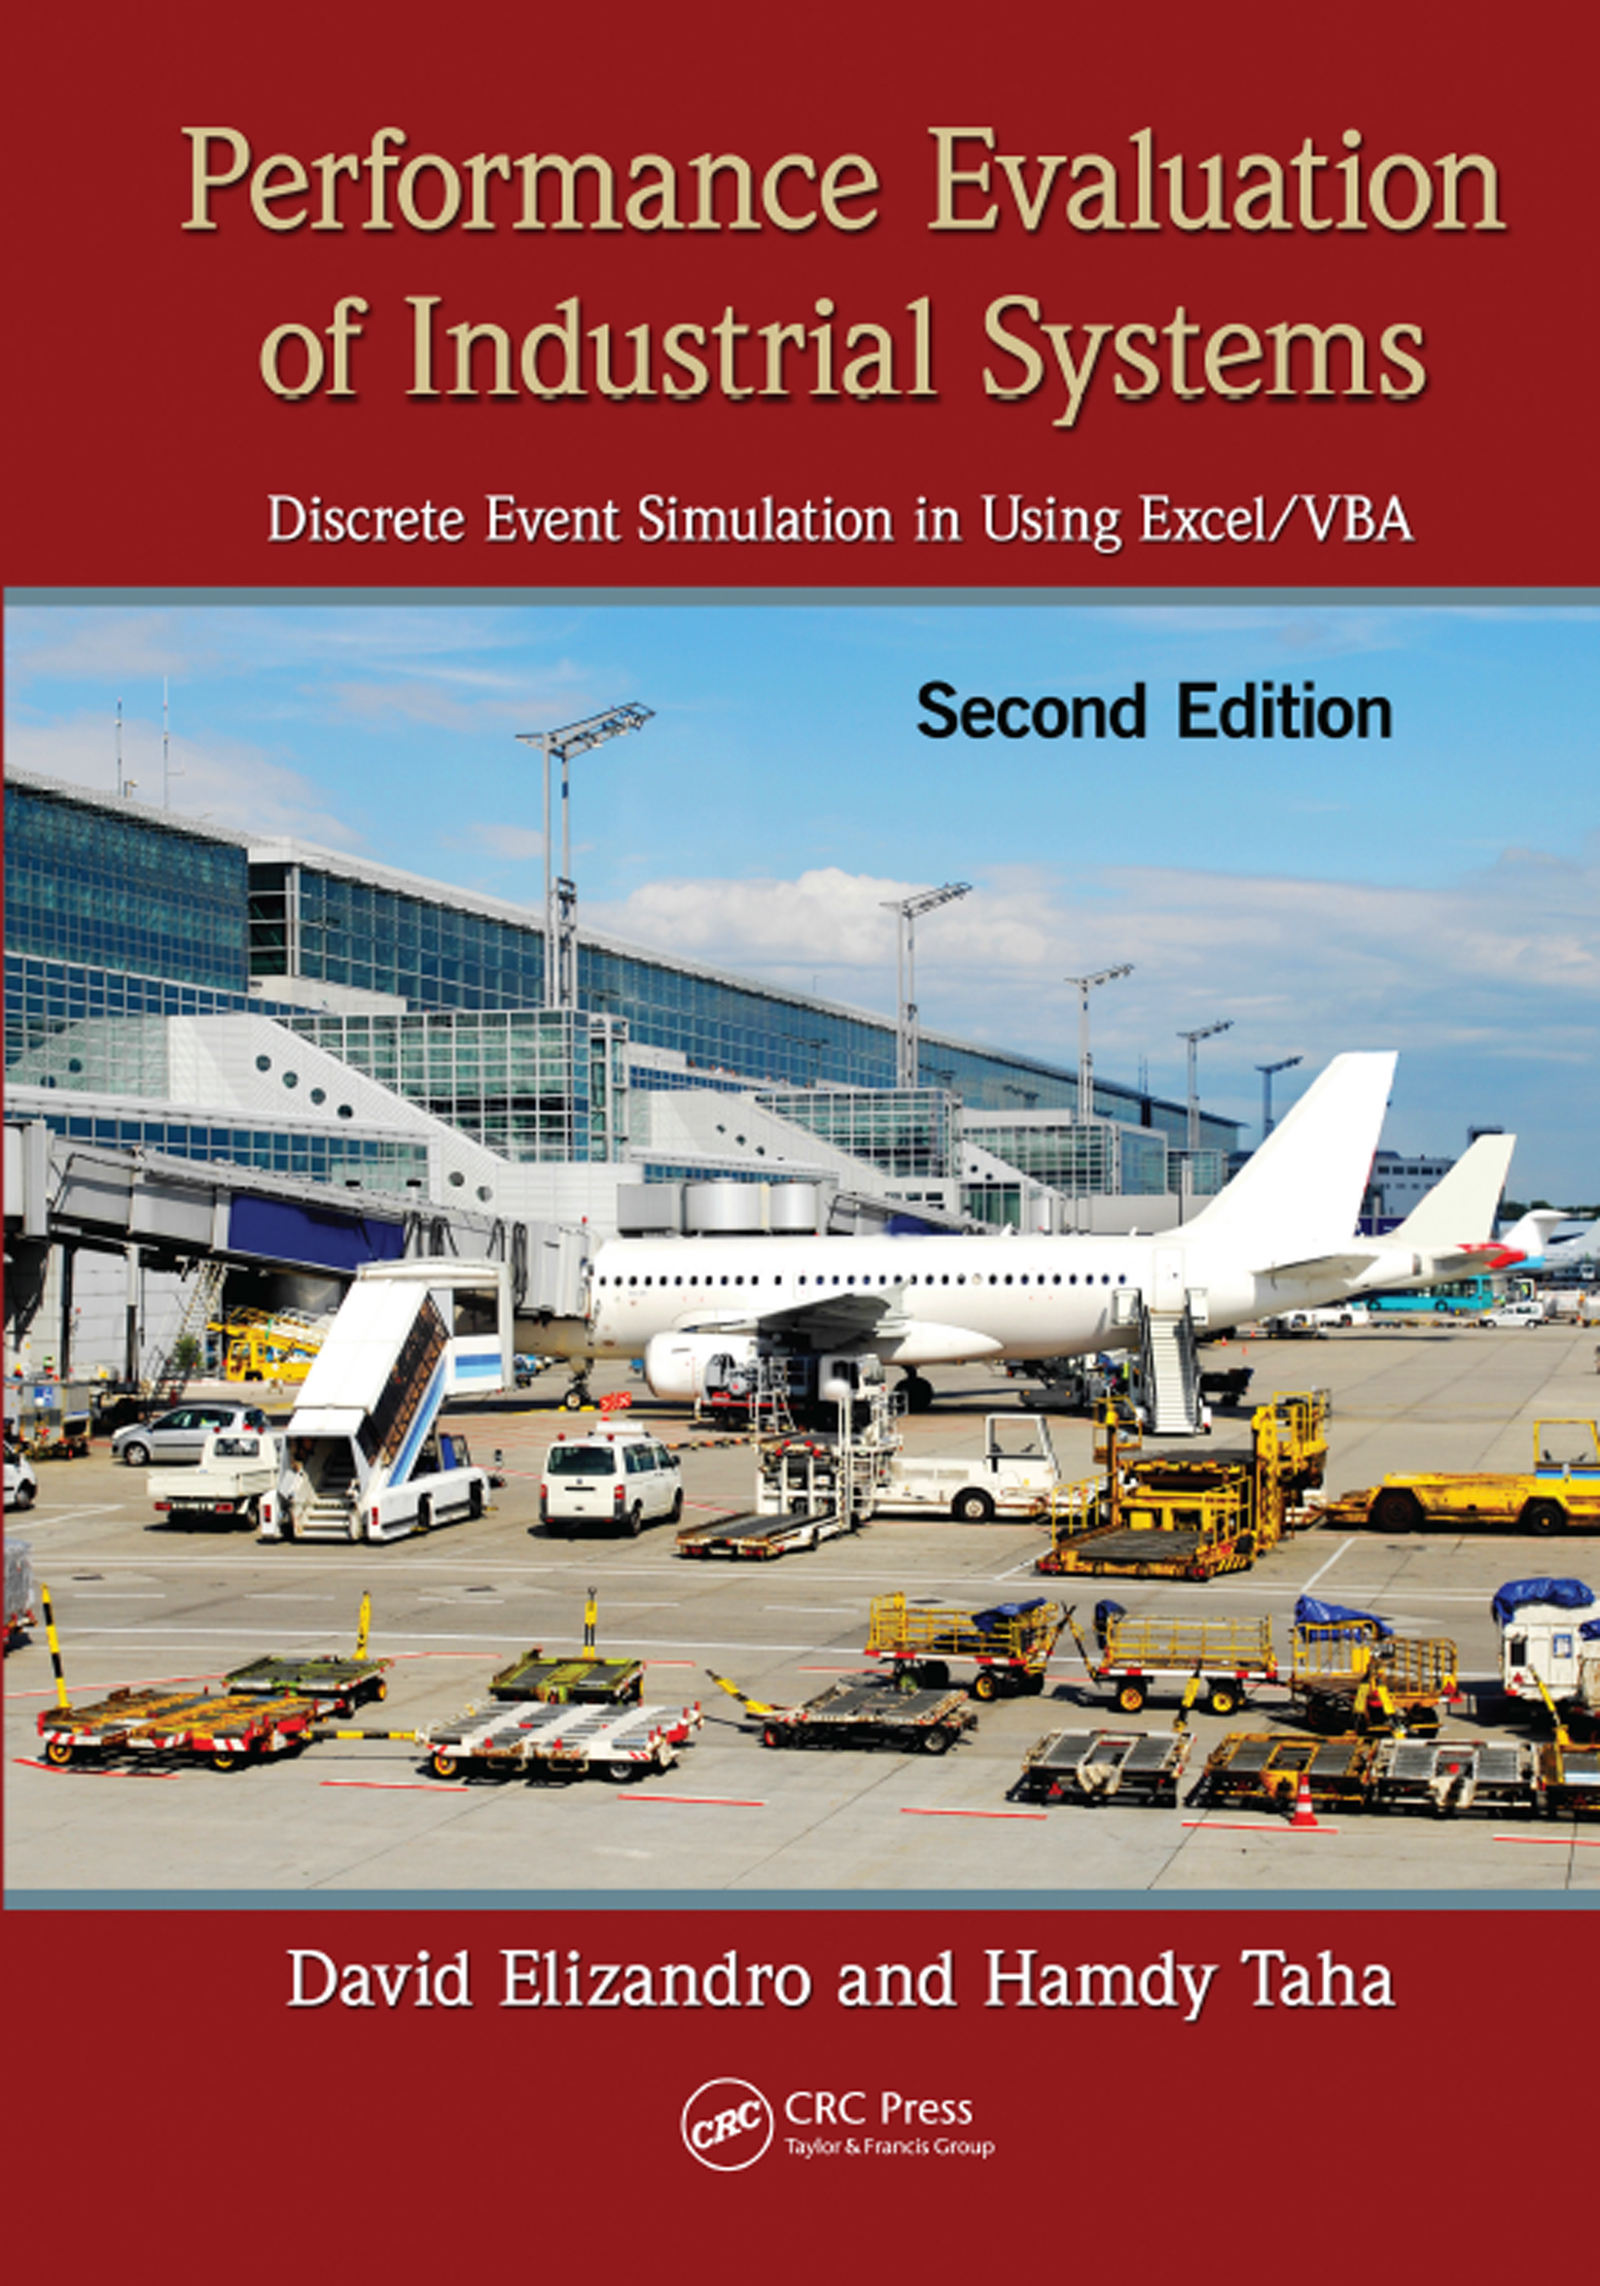 Performance Evaluation of Industrial Systems